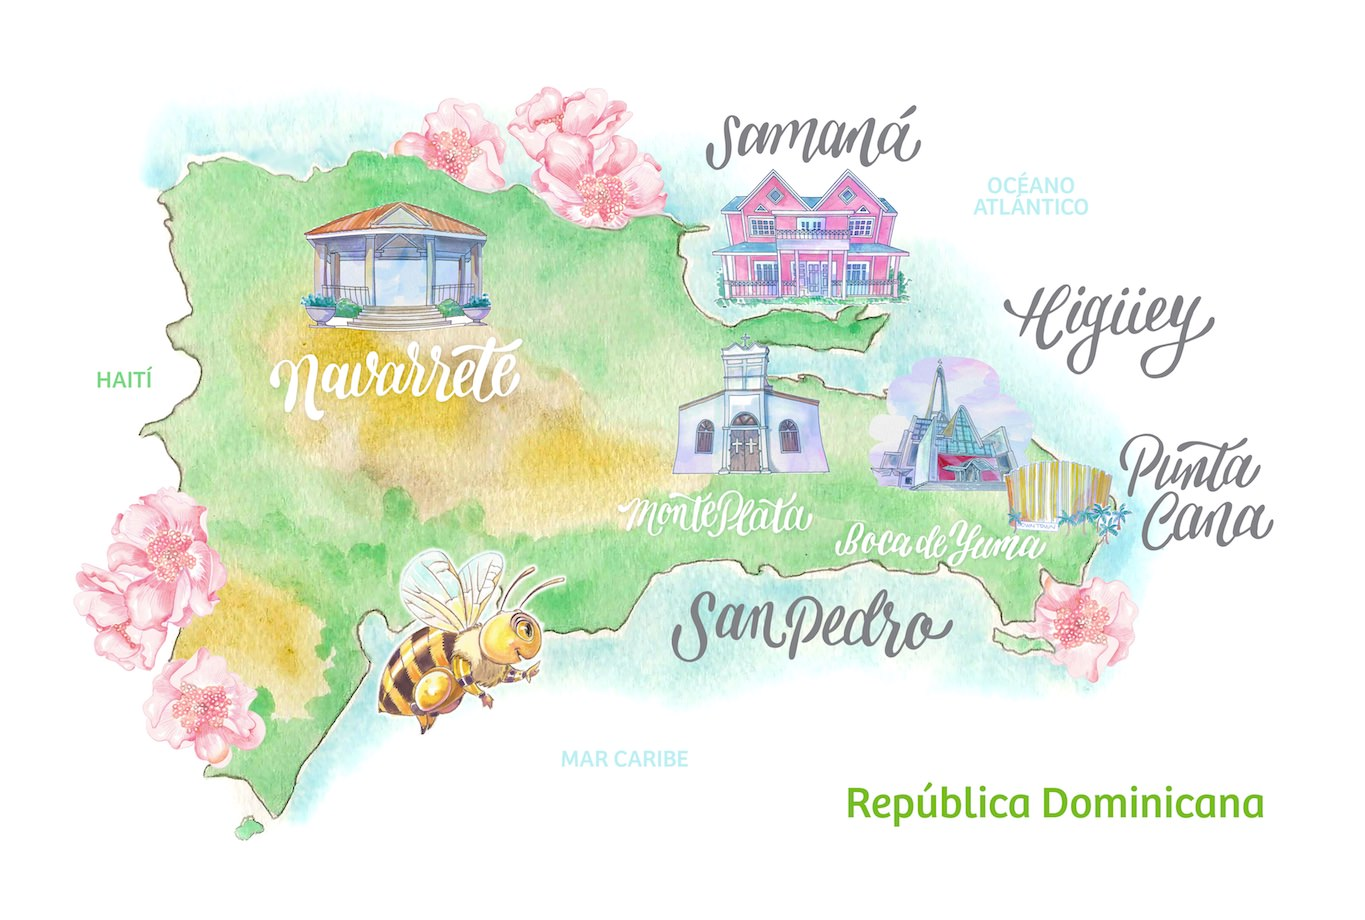 the dominican republic, where the raw infused honey and bees come from